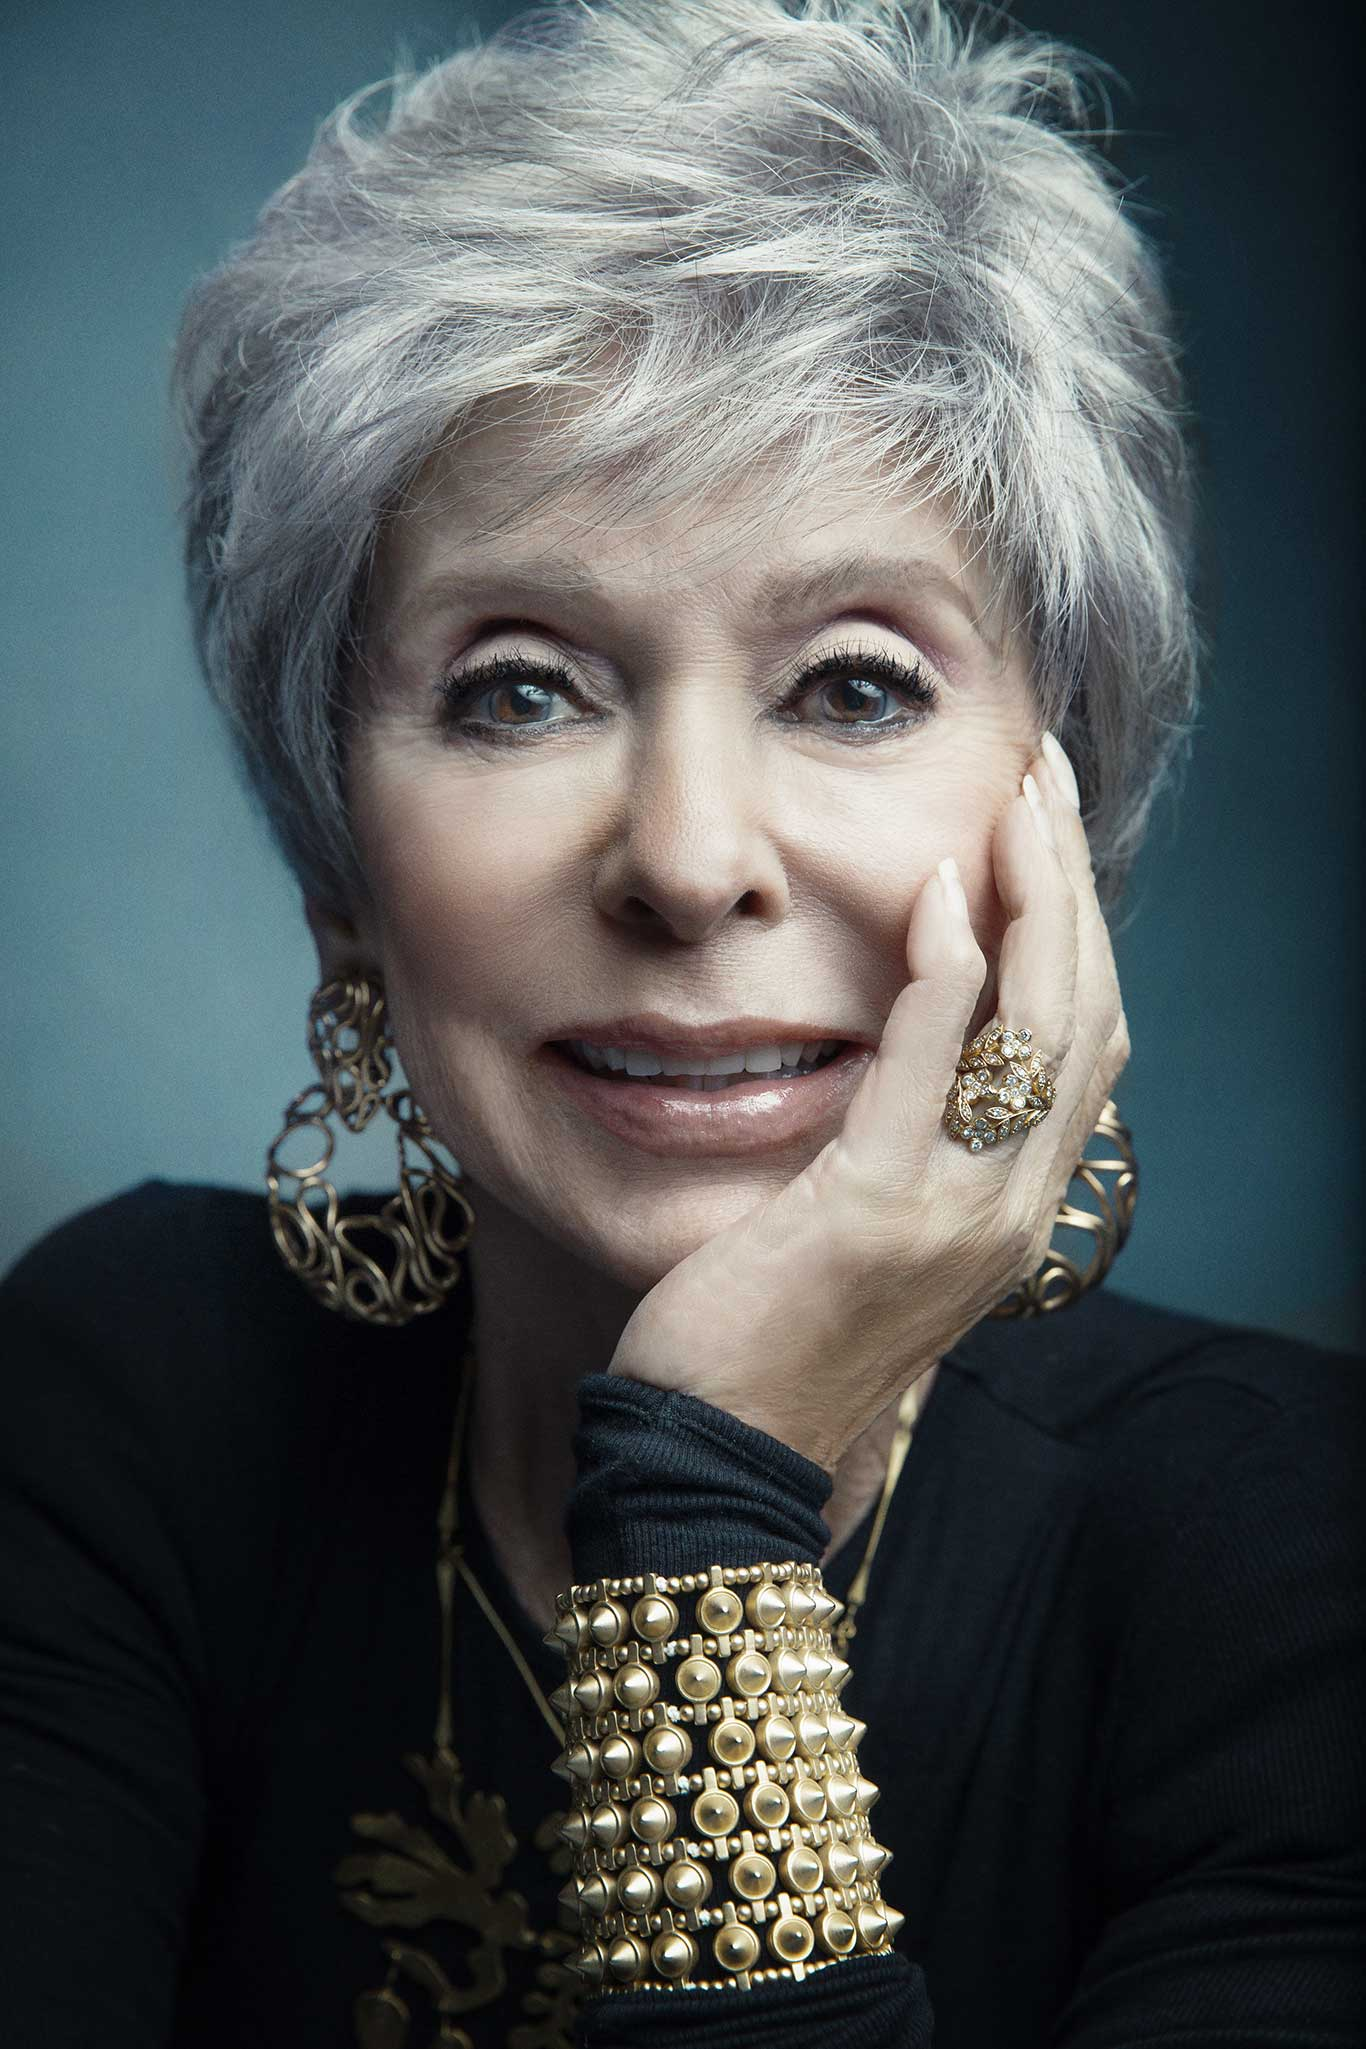 Rita Moreno Interview - OC Movie Reviews - Movie Reviews, Movie News, Documentary Reviews, Short Films, Short Film Reviews, Trailers, Movie Trailers, Interviews, film reviews, film news, hollywood, indie films, documentaries, TV shows